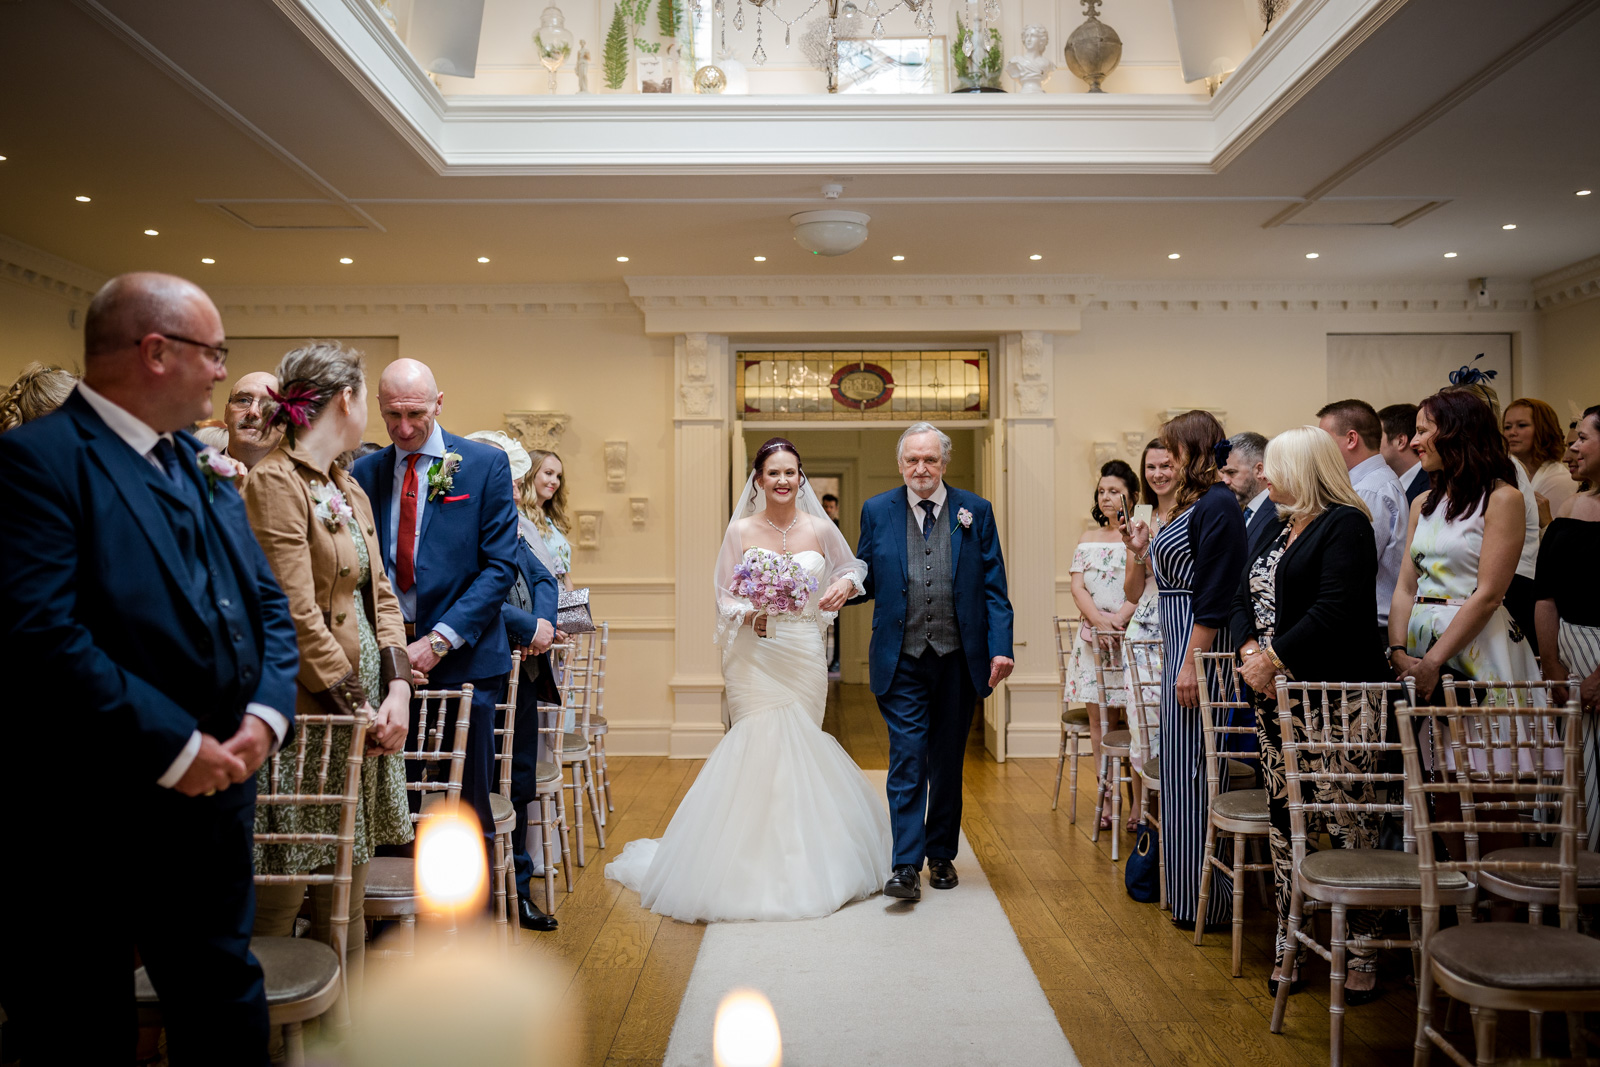 Ceremony at an Ashfield House Wedding in Wigan